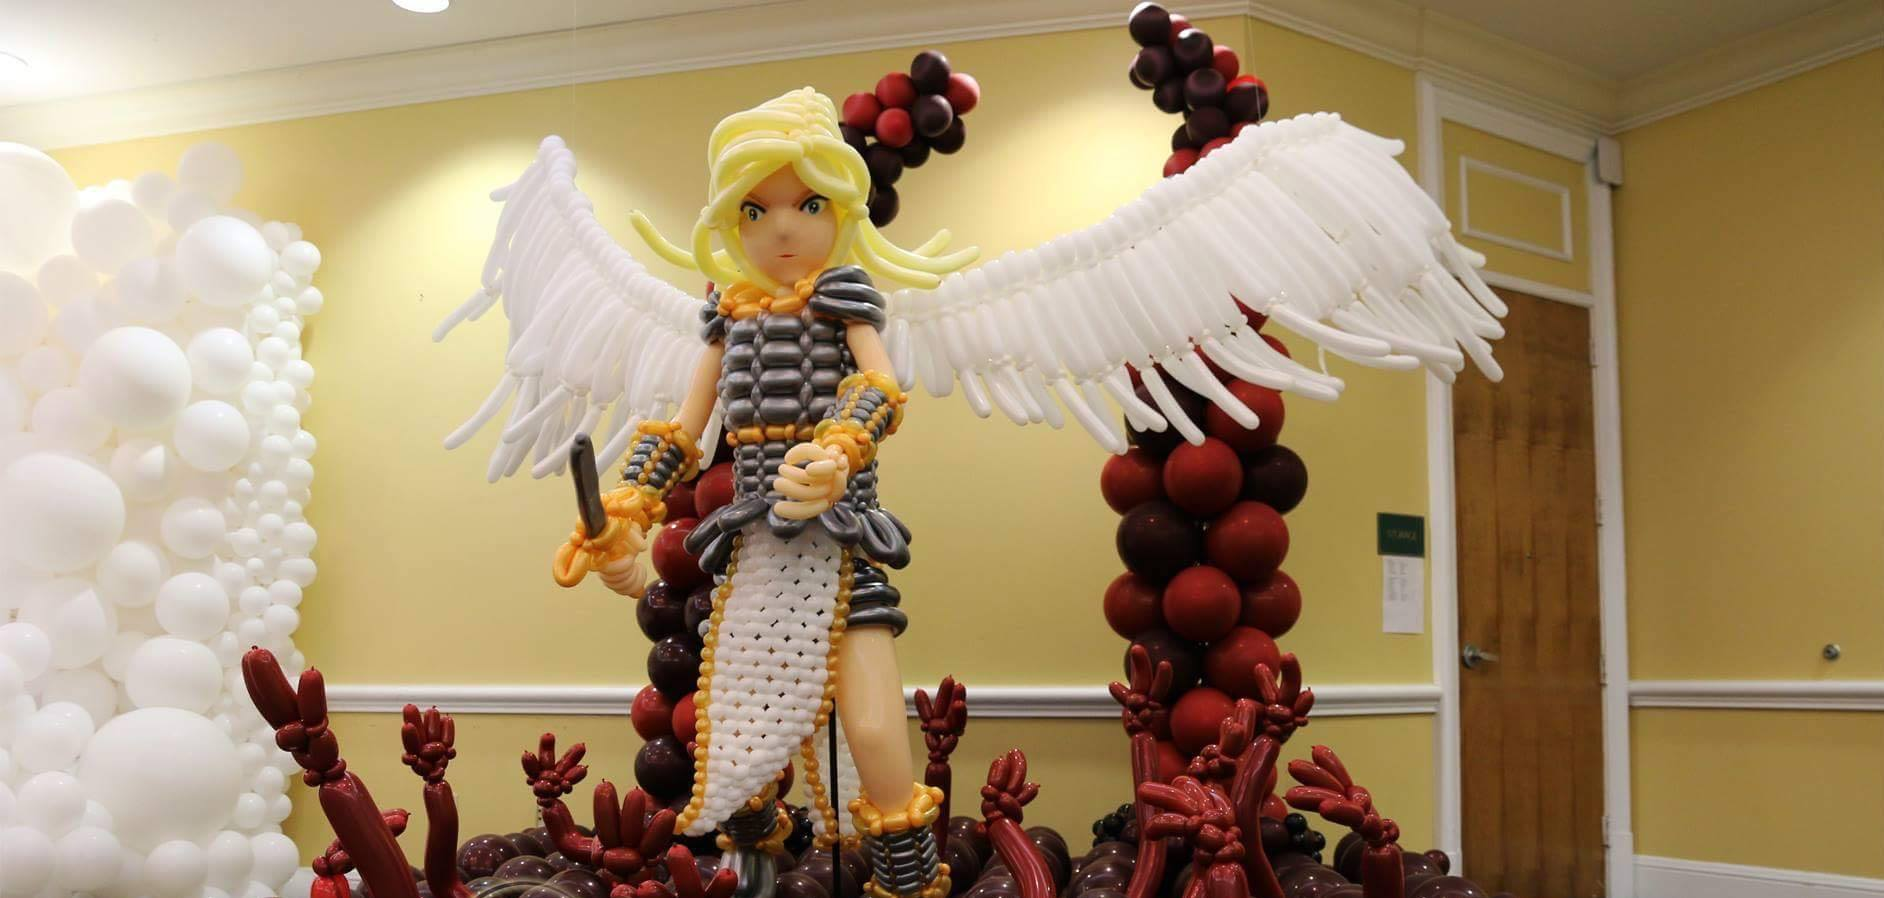 Large sculpture balloon creation by Twisted Inflations